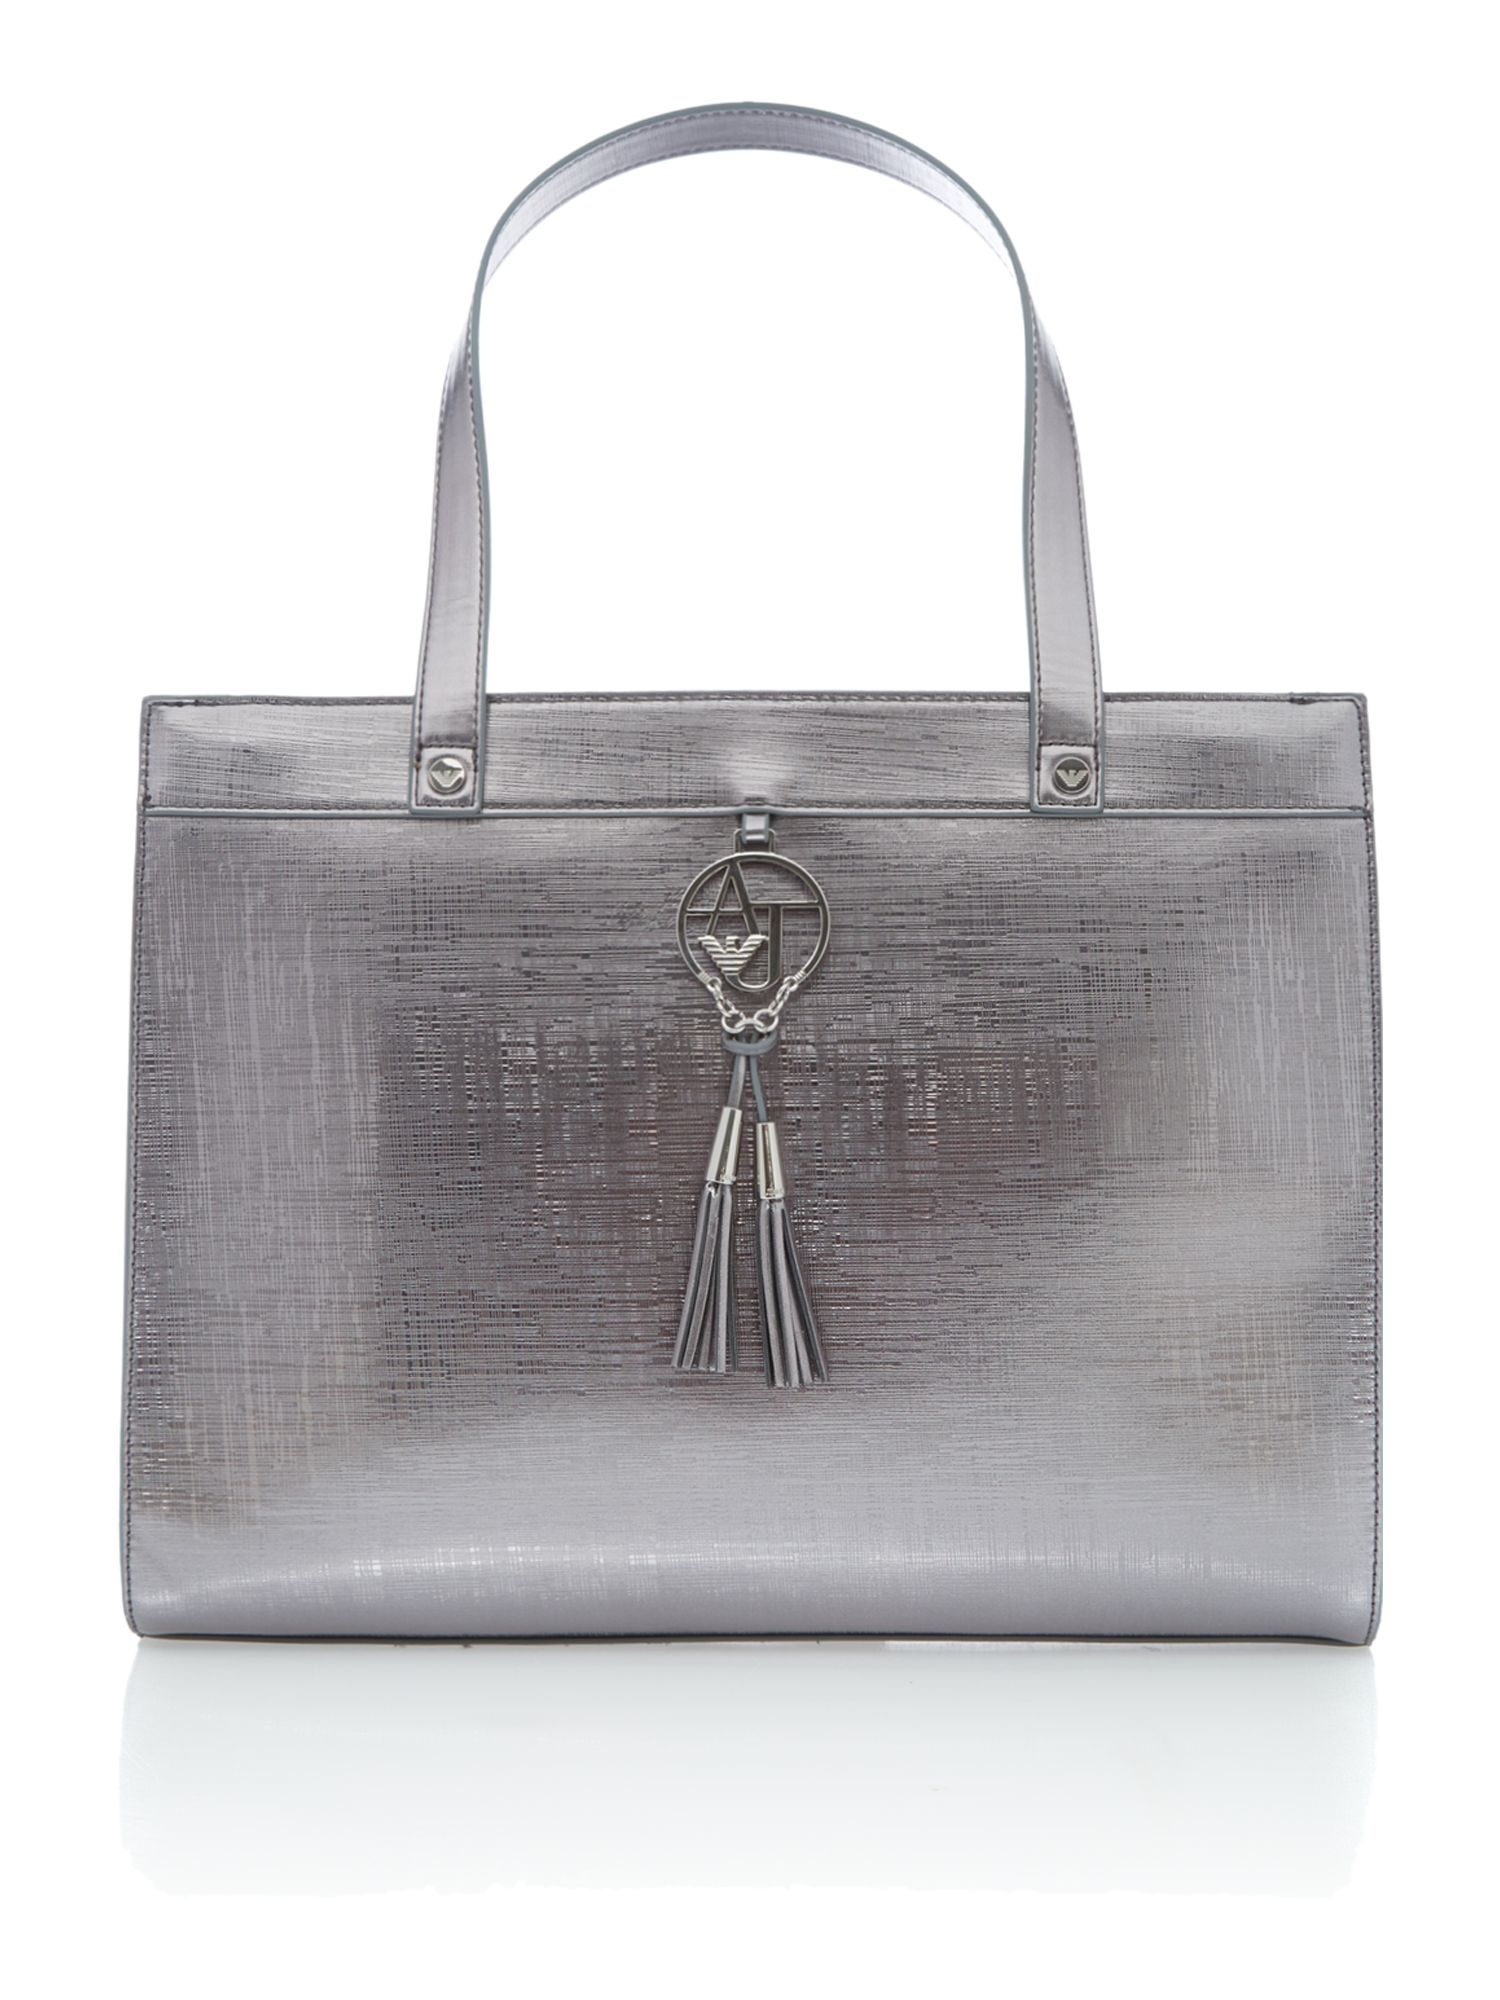 Medium metallic pink tote bag